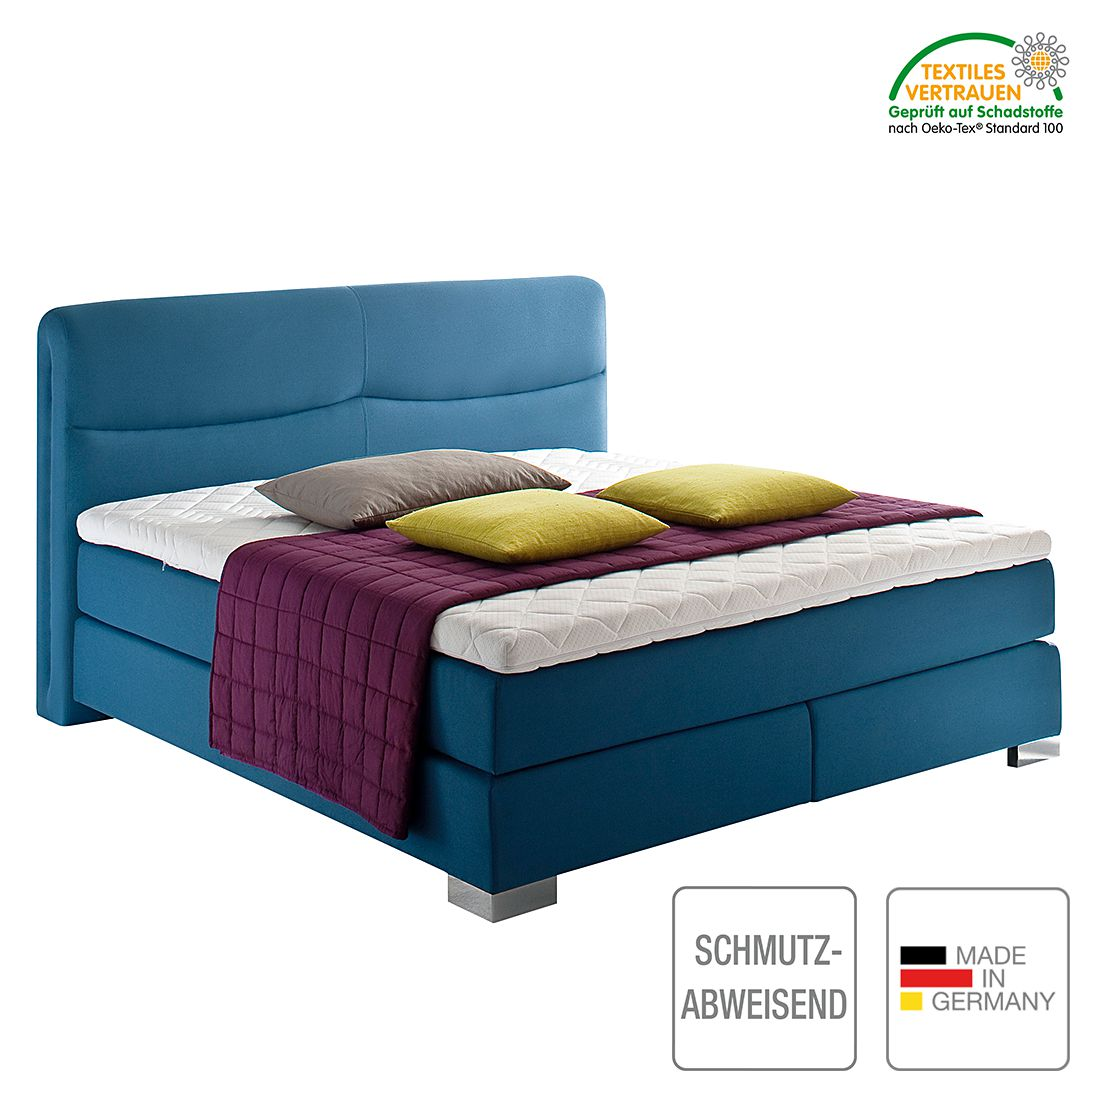 boxspringbett scala webstoff h2 bis 80 kg h3 ab 80 kg viscoschaumtopper. Black Bedroom Furniture Sets. Home Design Ideas